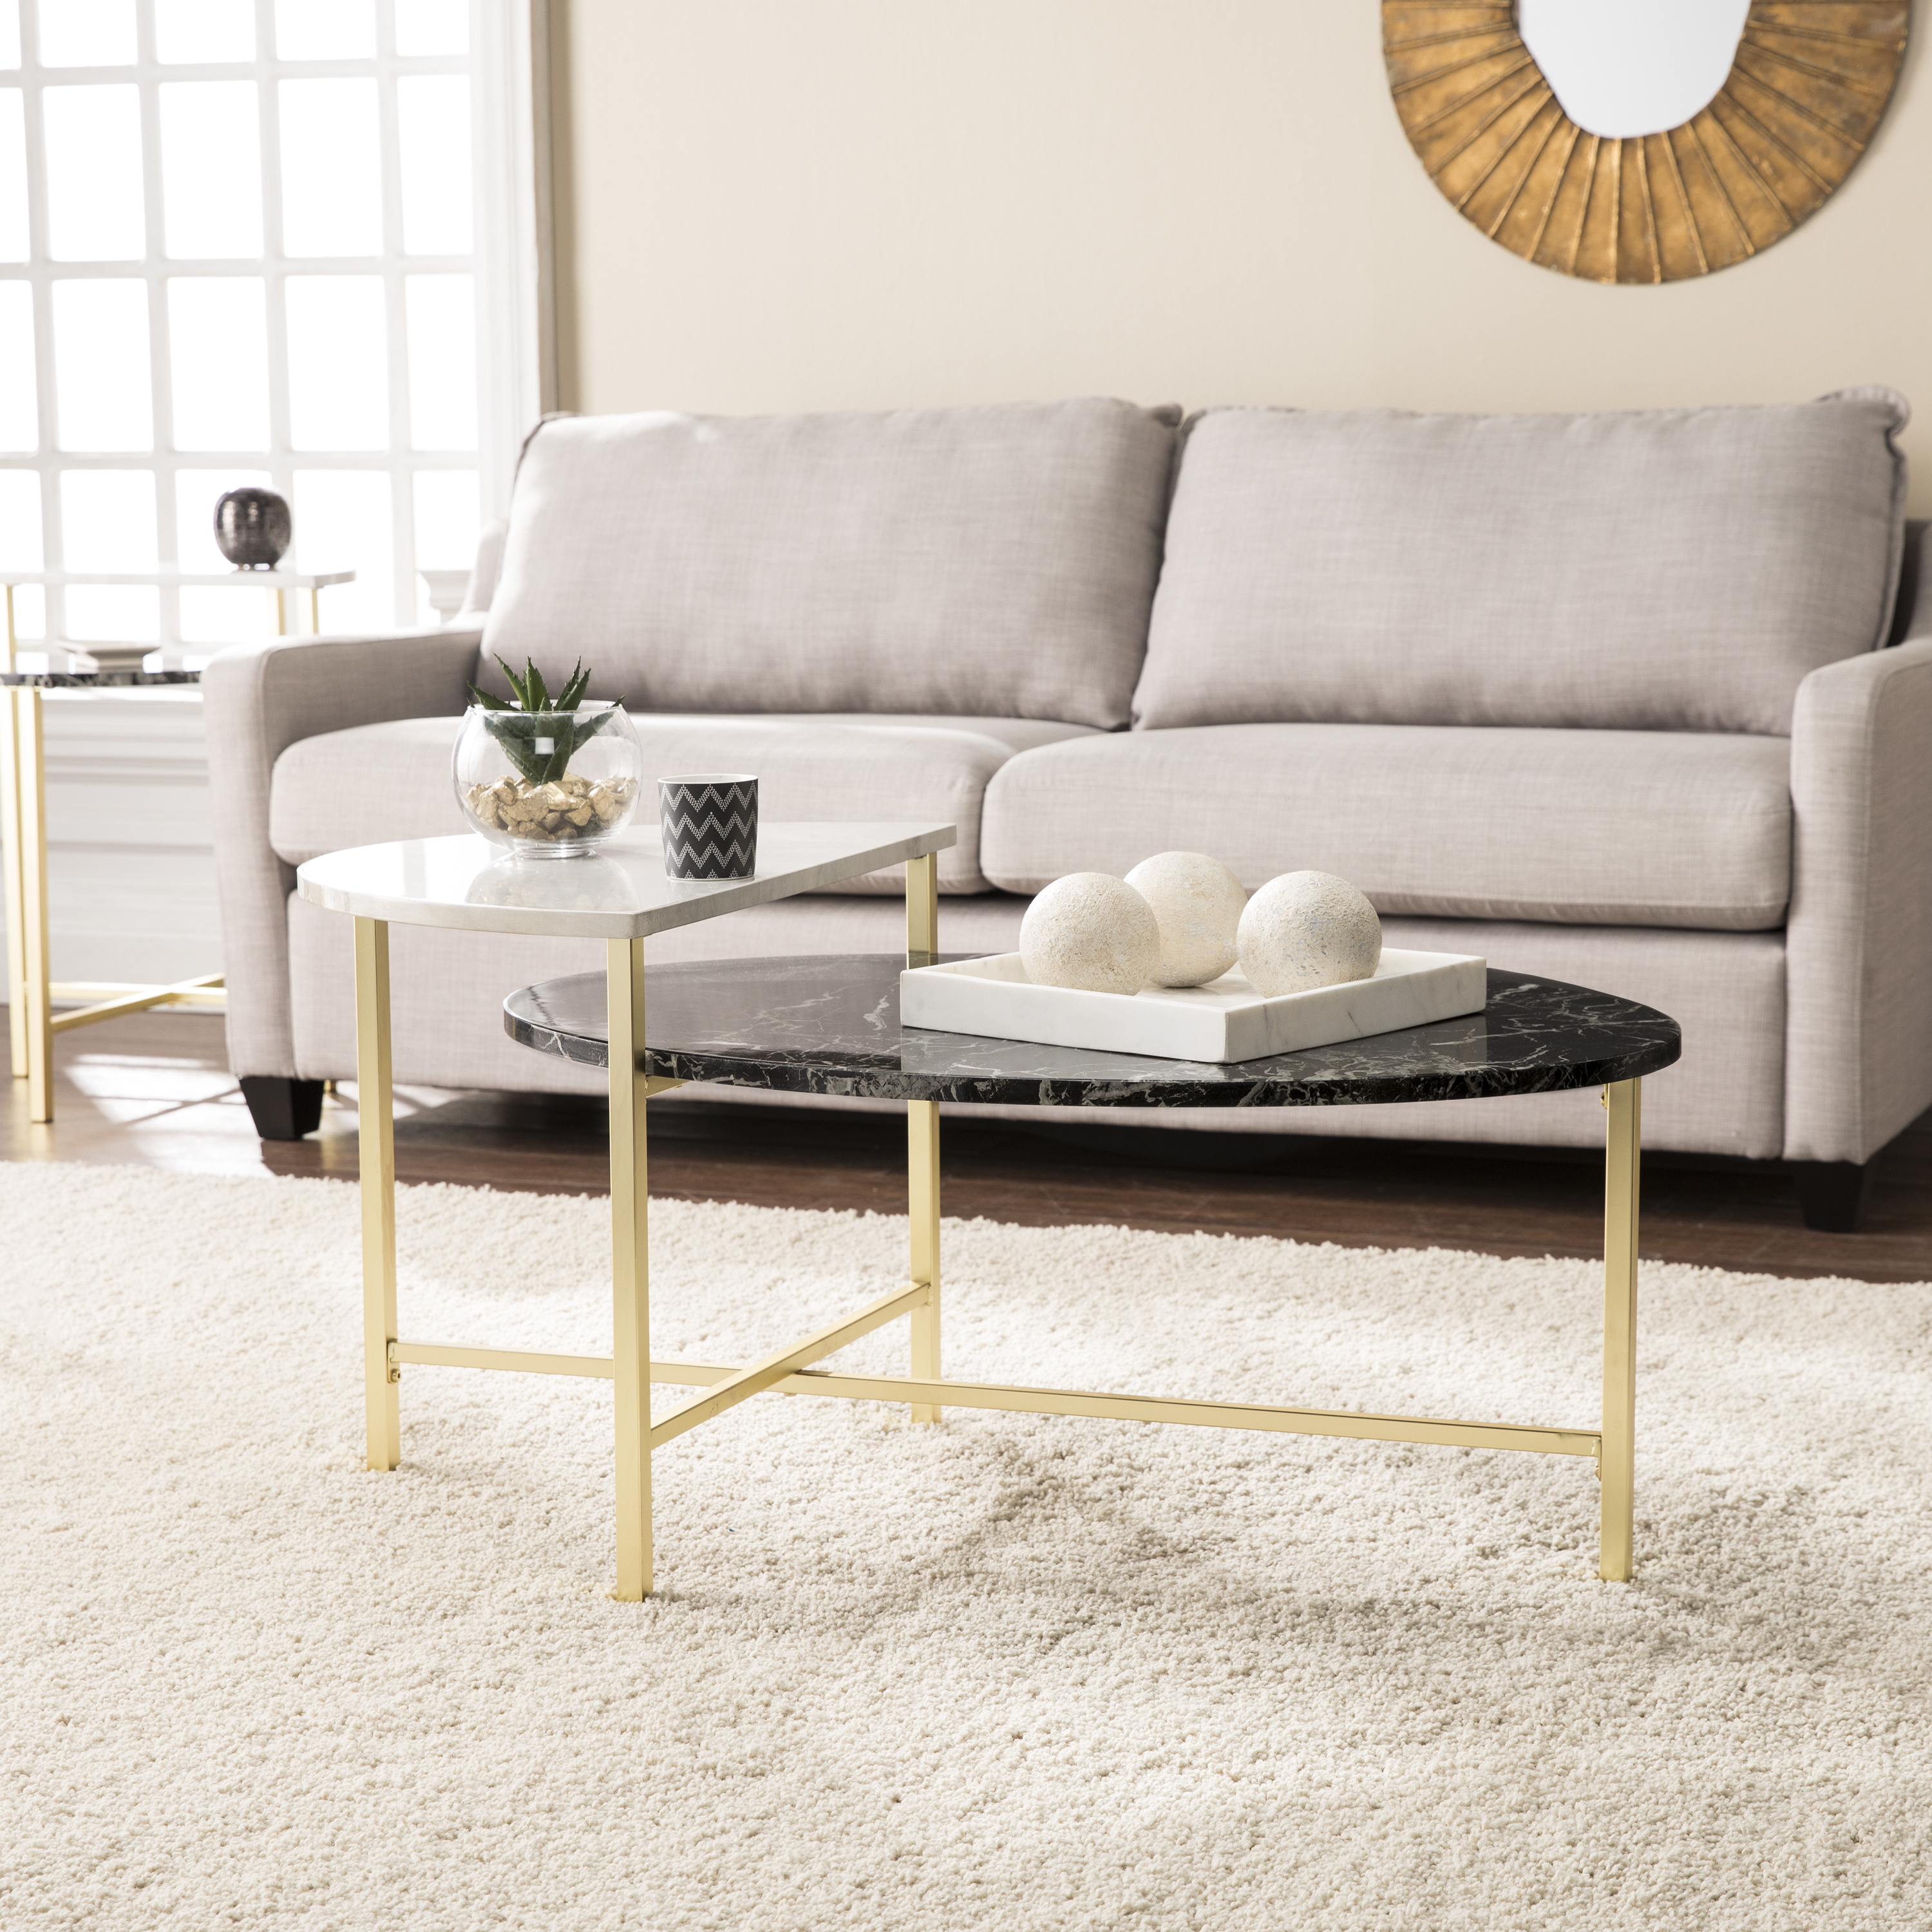 Holly & Martin Bickly 2-Level Cocktail Table, Eclectic Style, Brushed Gold